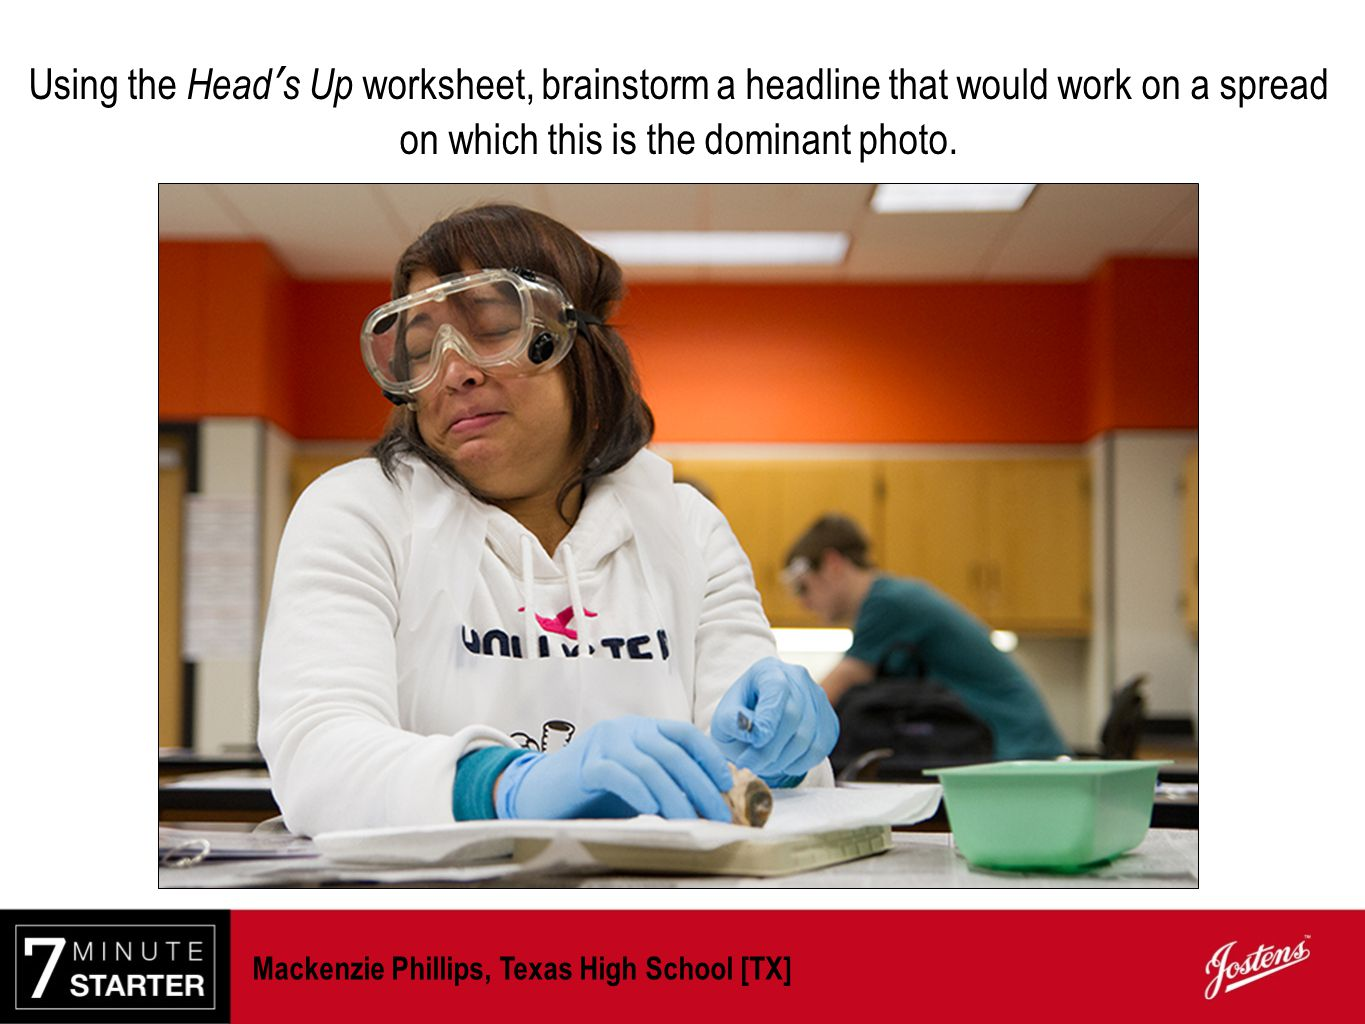 Using the Head's Up worksheet, brainstorm a headline that would work on a spread on which this is the dominant photo.